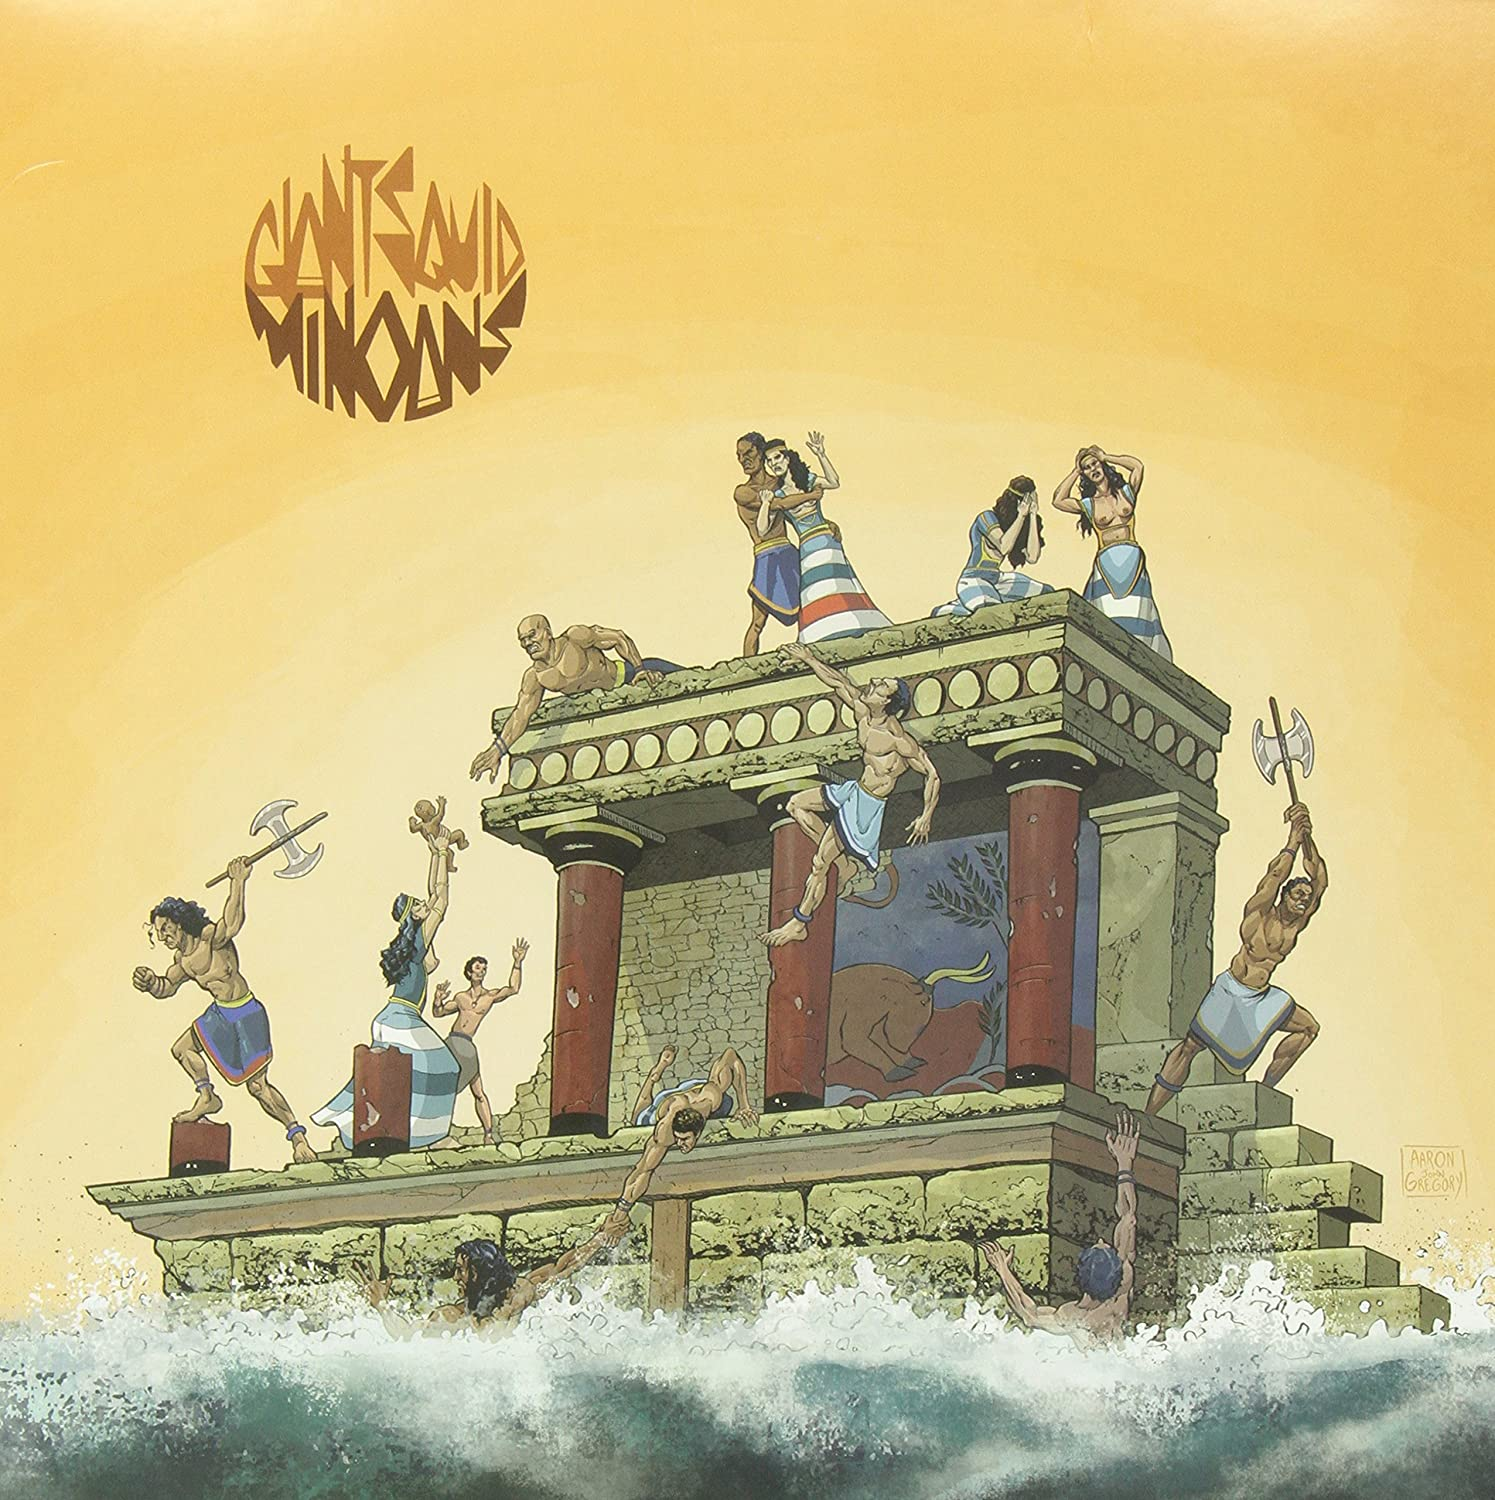 Giant Squid/Minoans [LP]